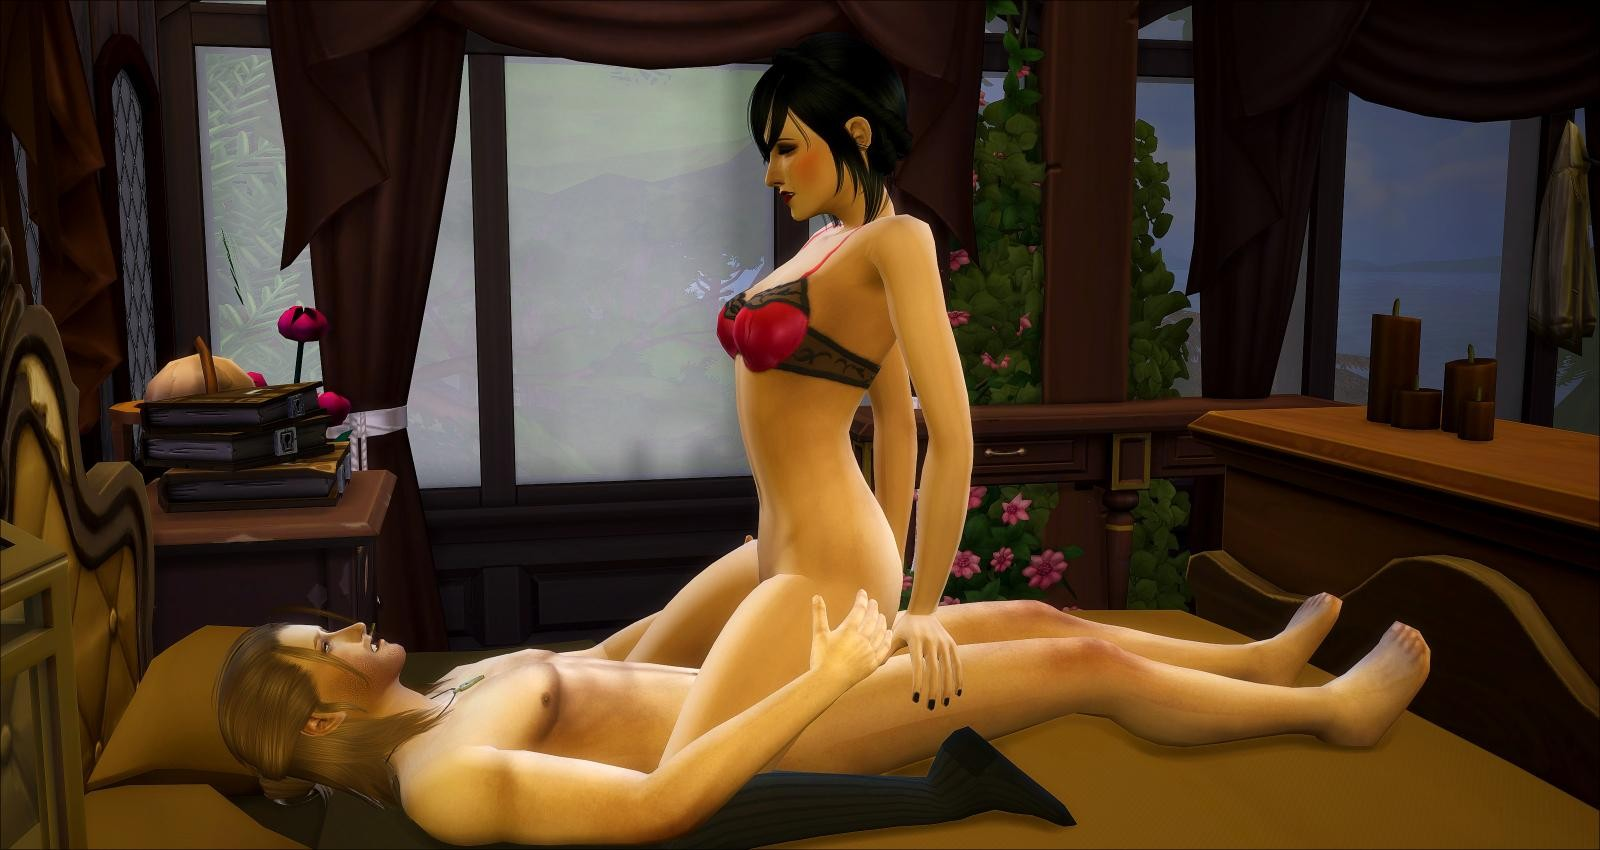 Sims porn game porncraft scene